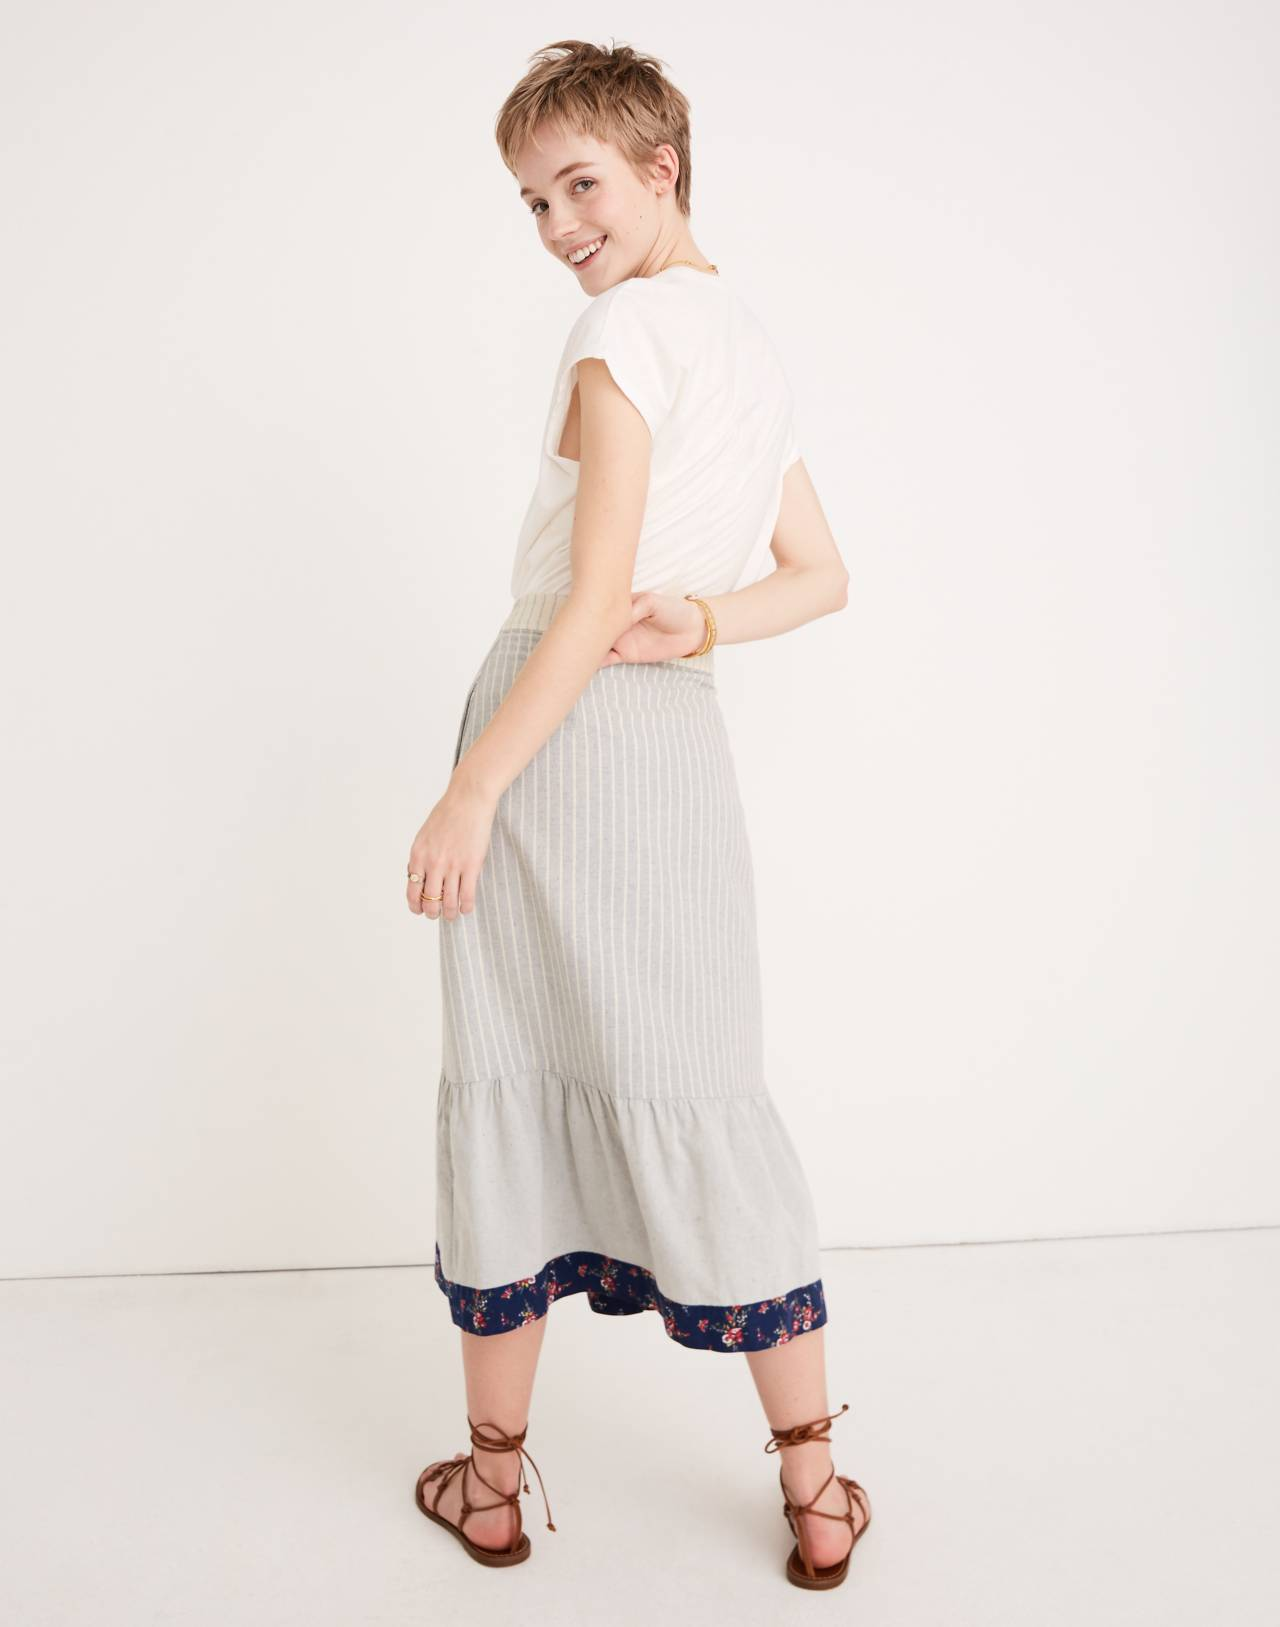 Madewell x The New Denim Project Patchwork Skirt in white skinny stripe image 3